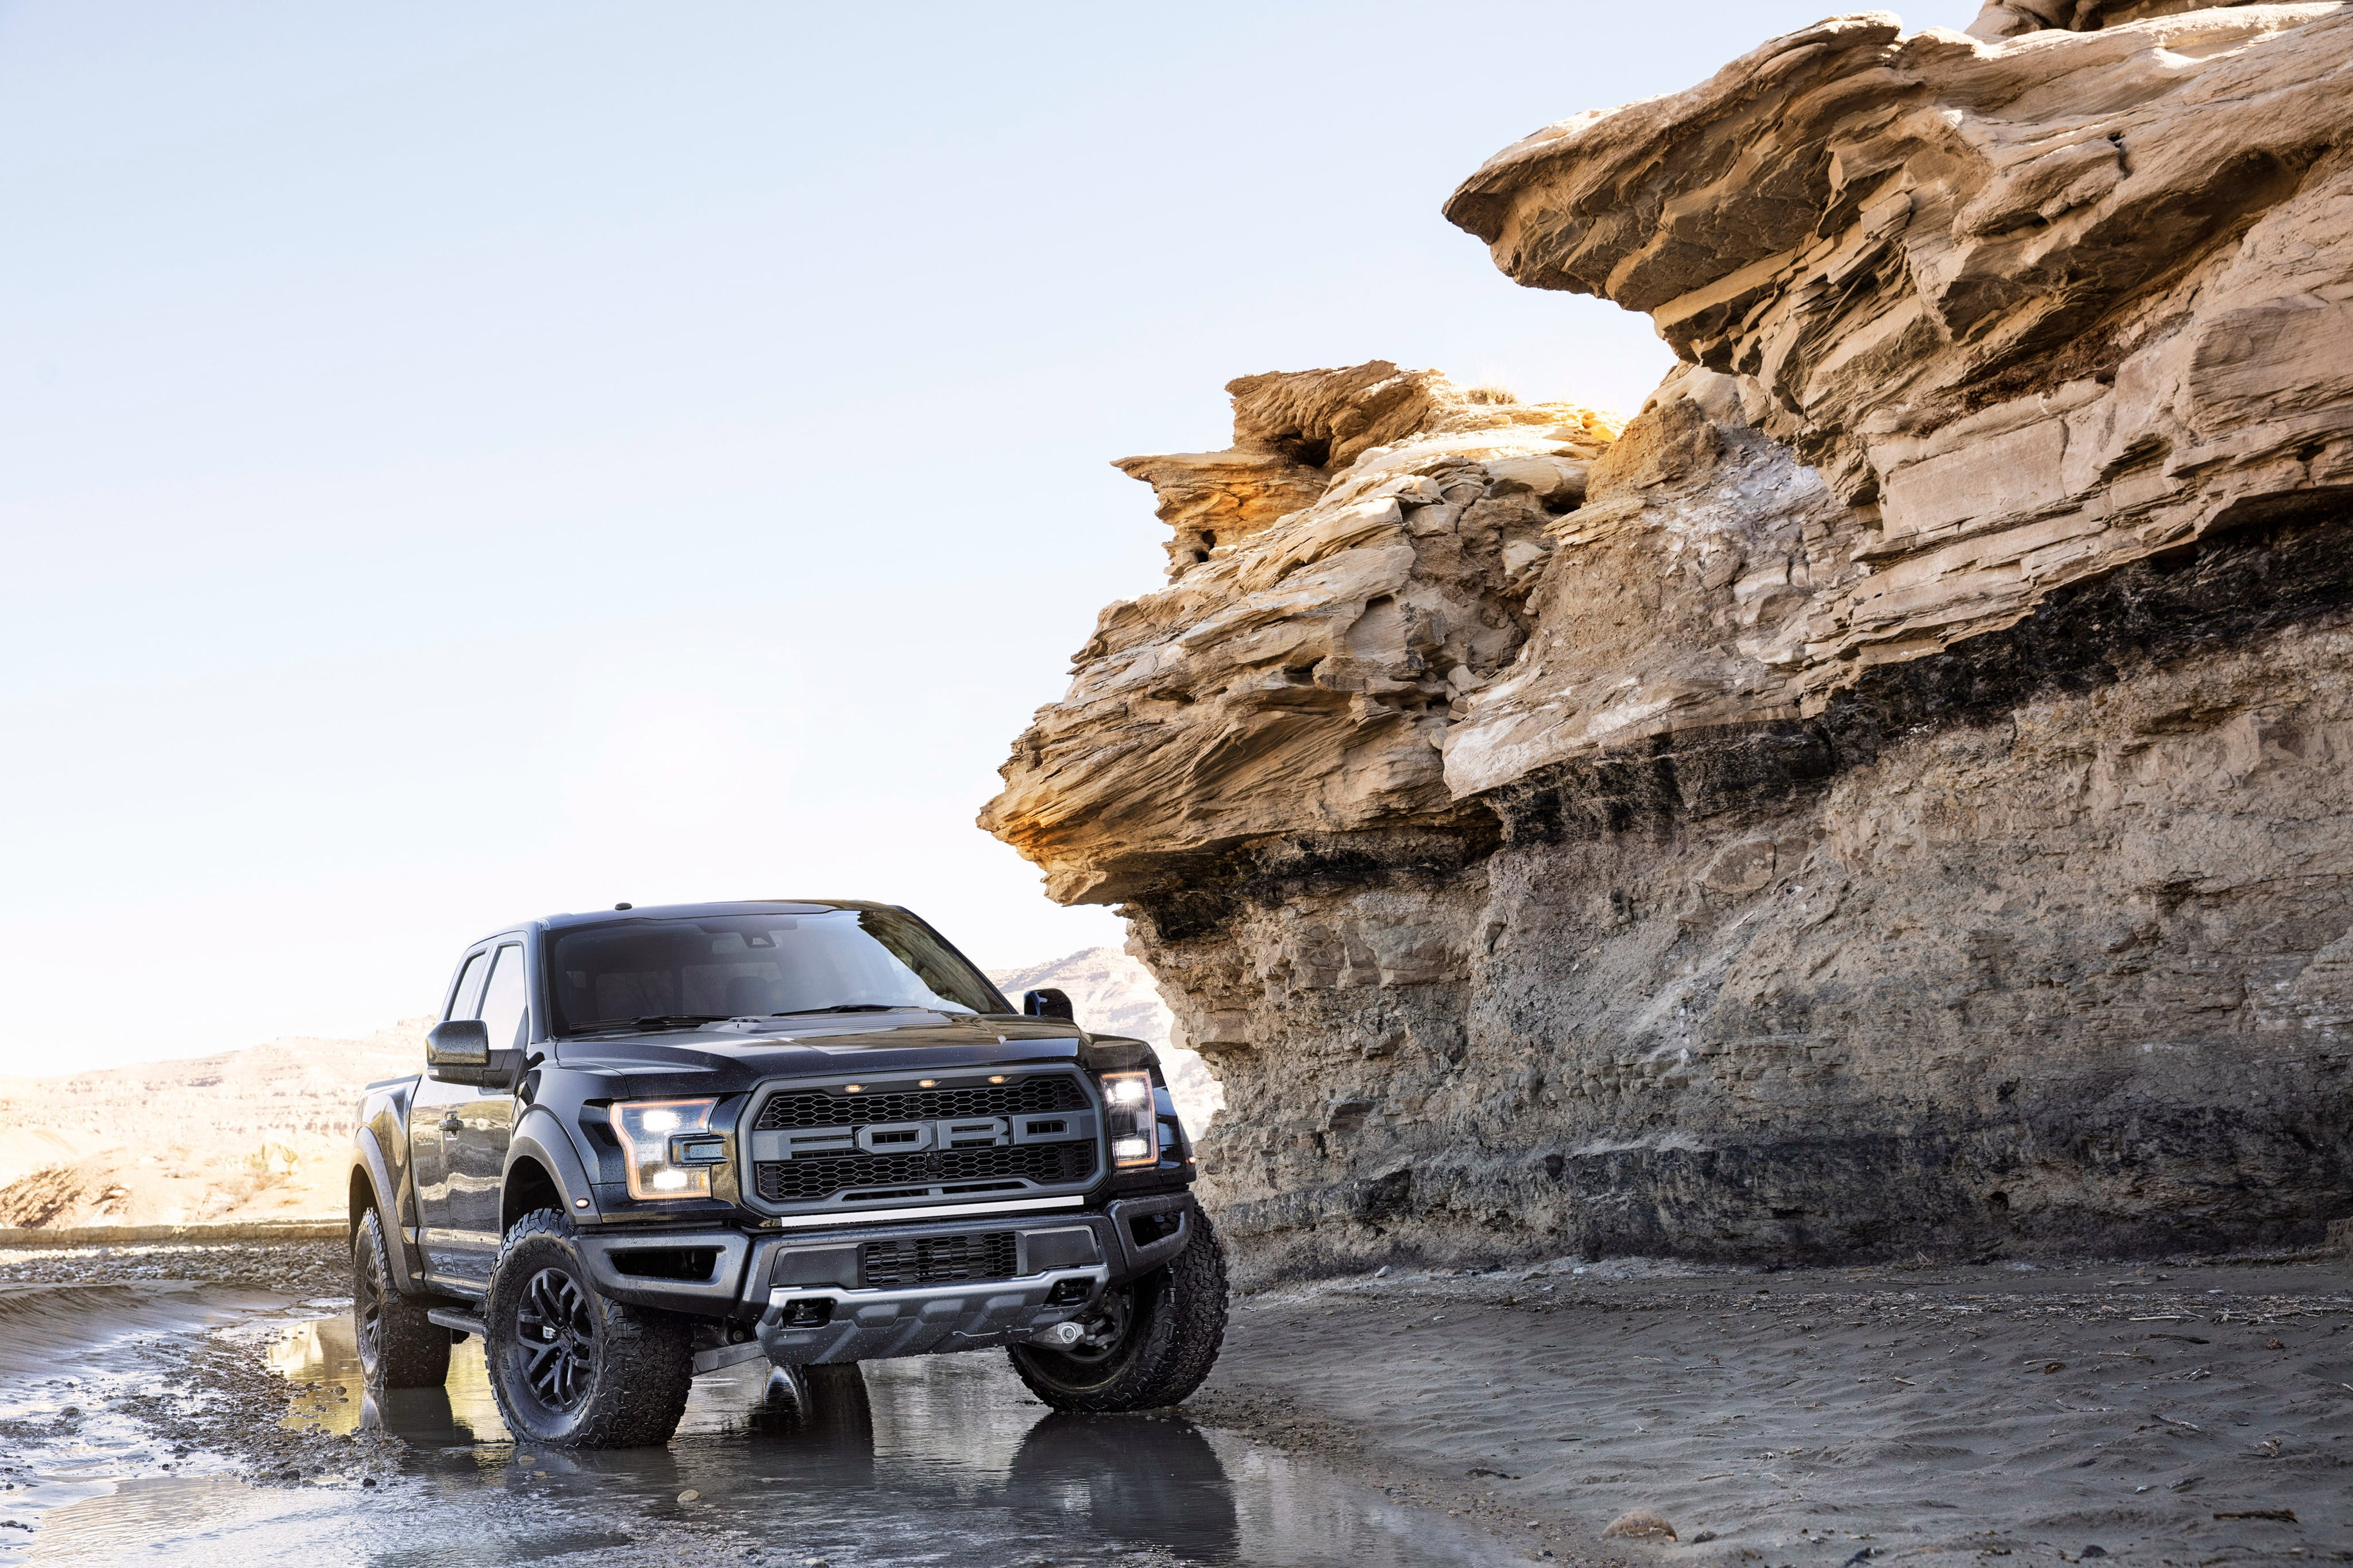 Ford Ranger Wallpapers HD 4096x2730